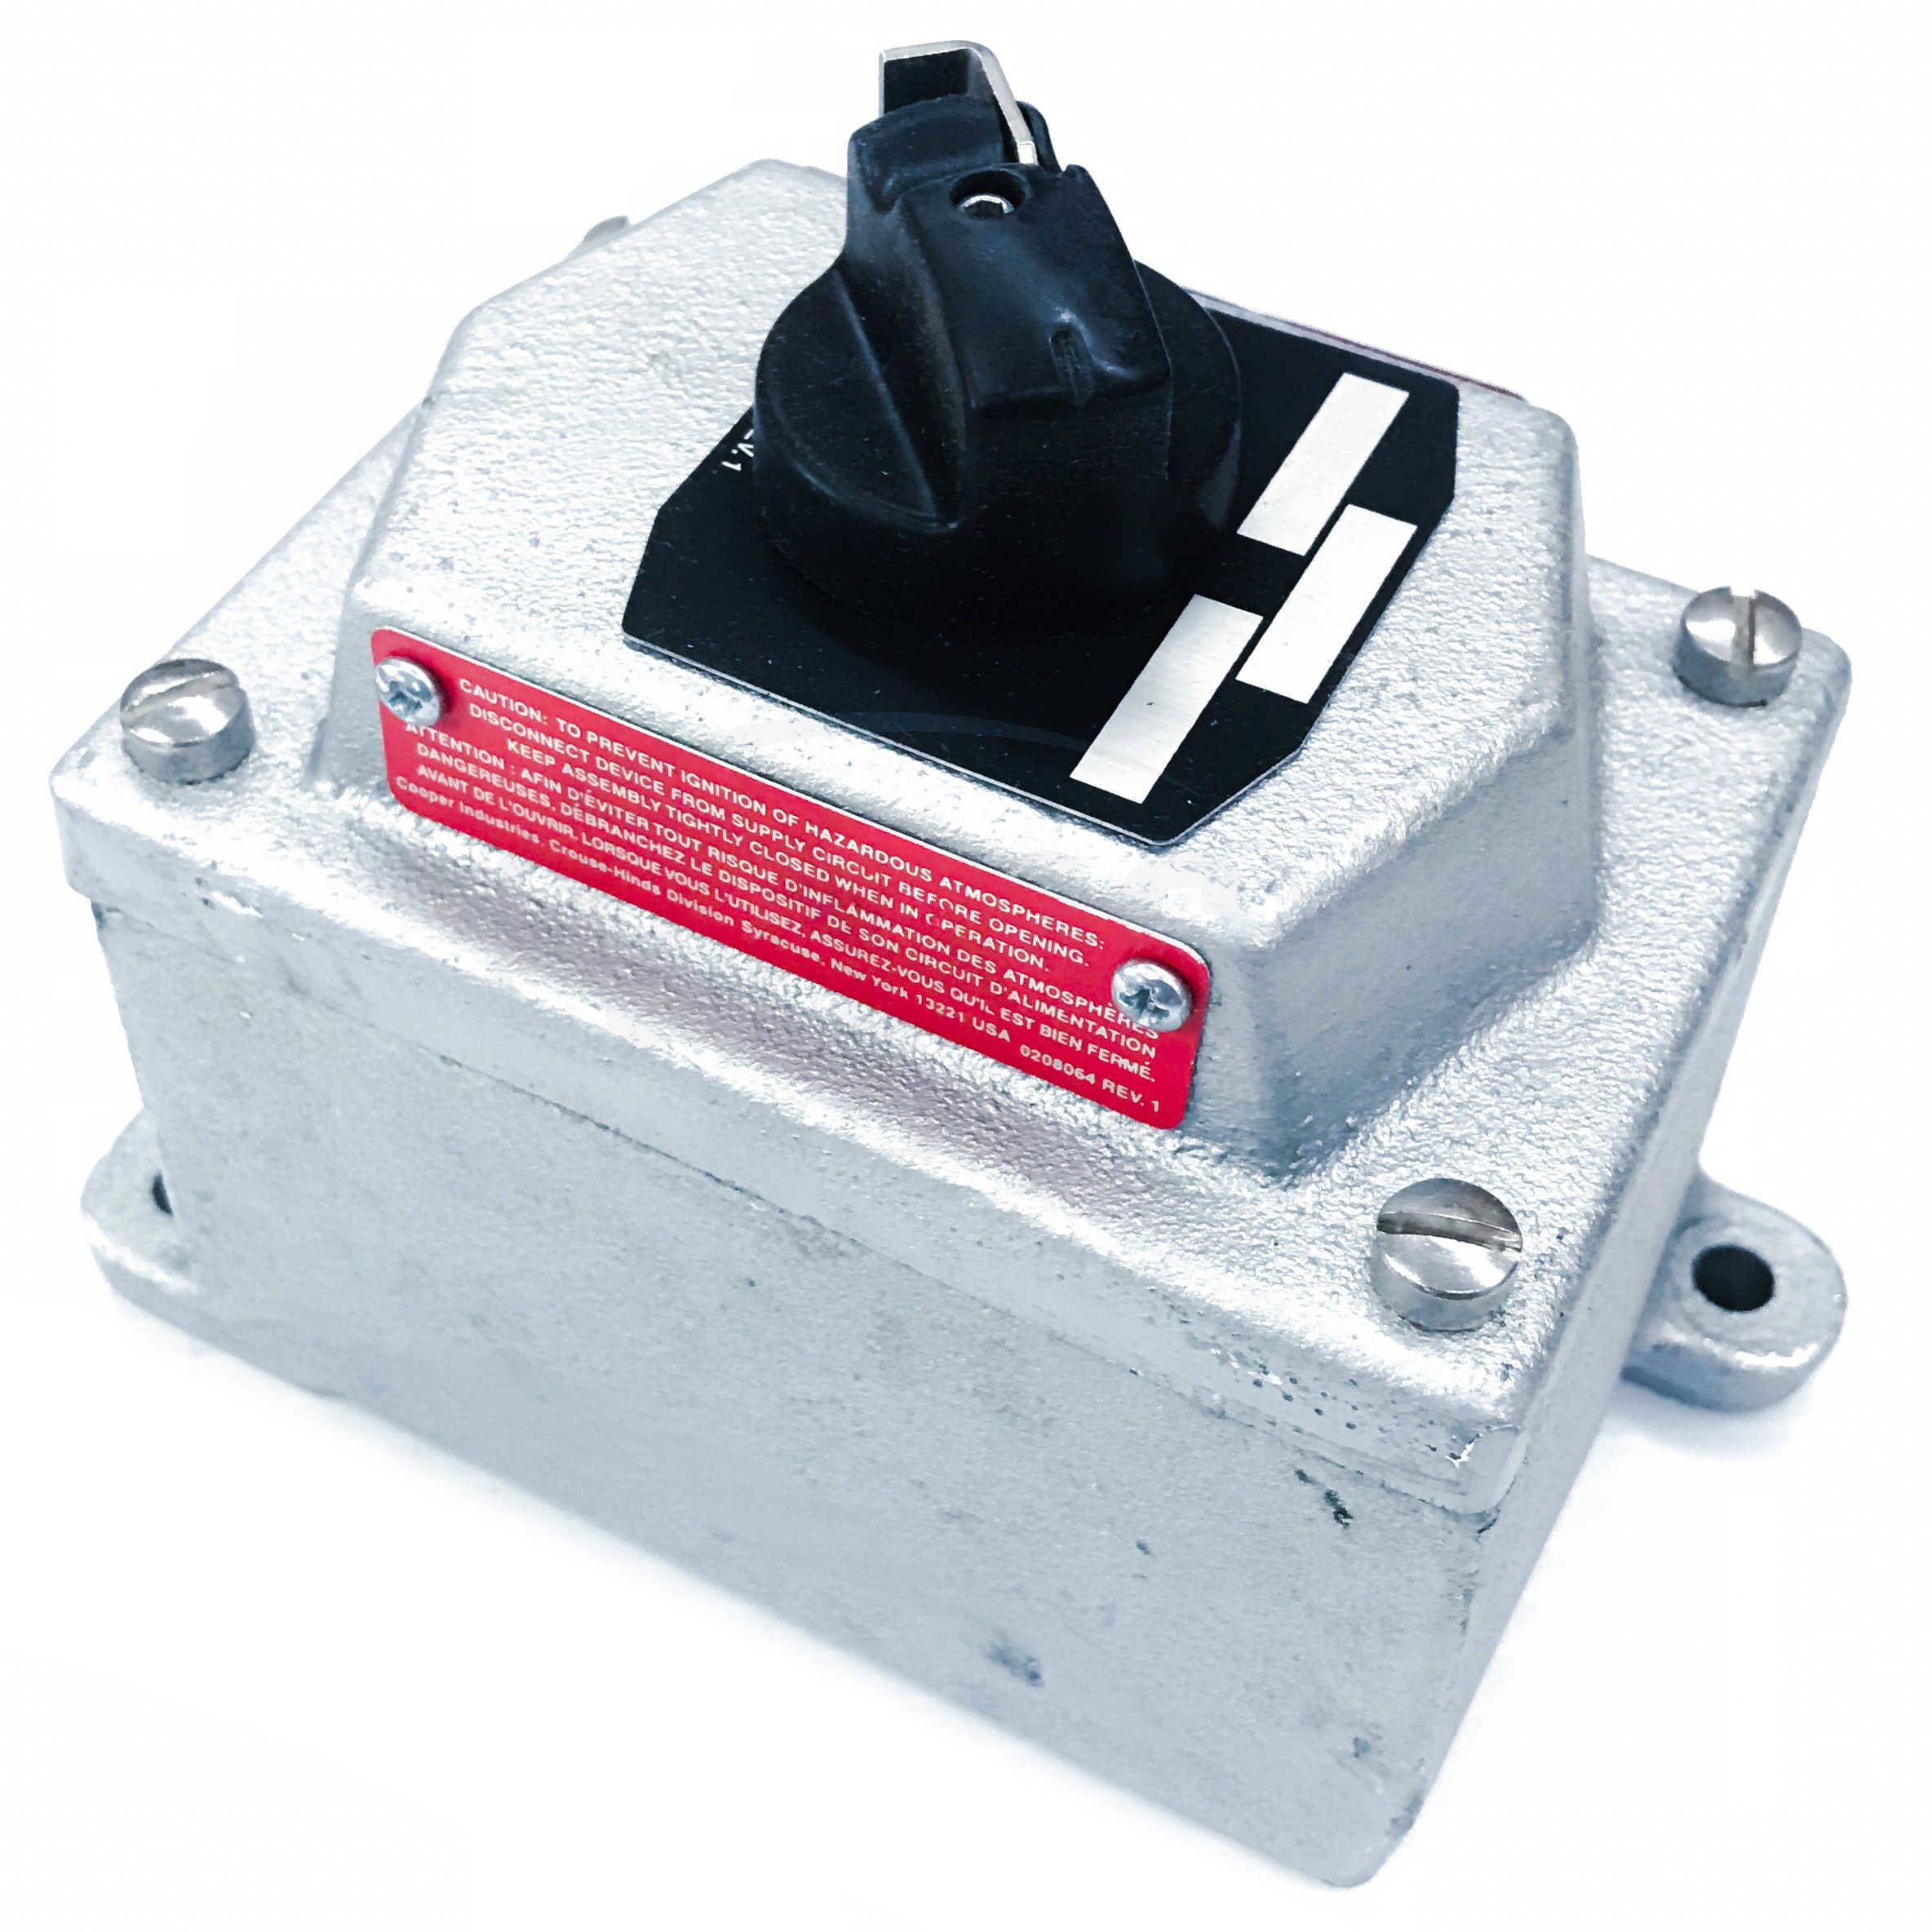 EDS21274 Crouse-Hinds Selector Switch